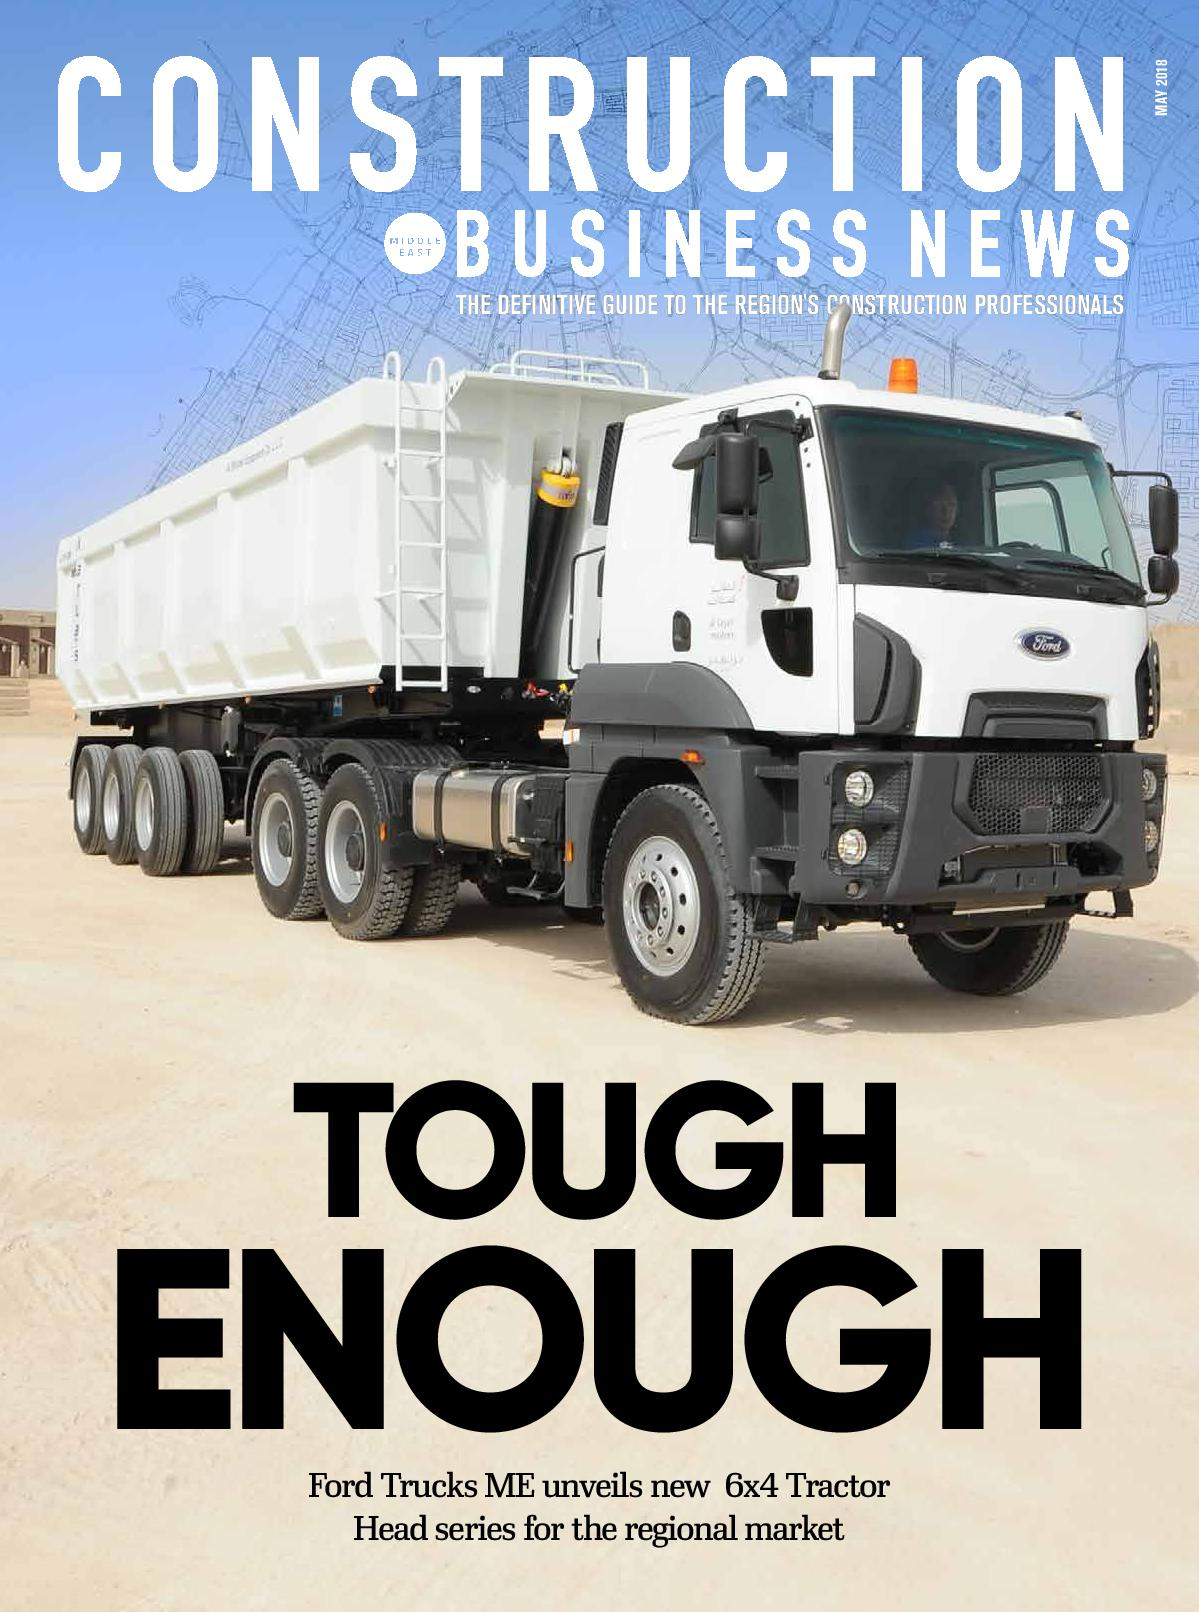 https://www.cbnme.com/magazines/construction-business-news-may-2018/